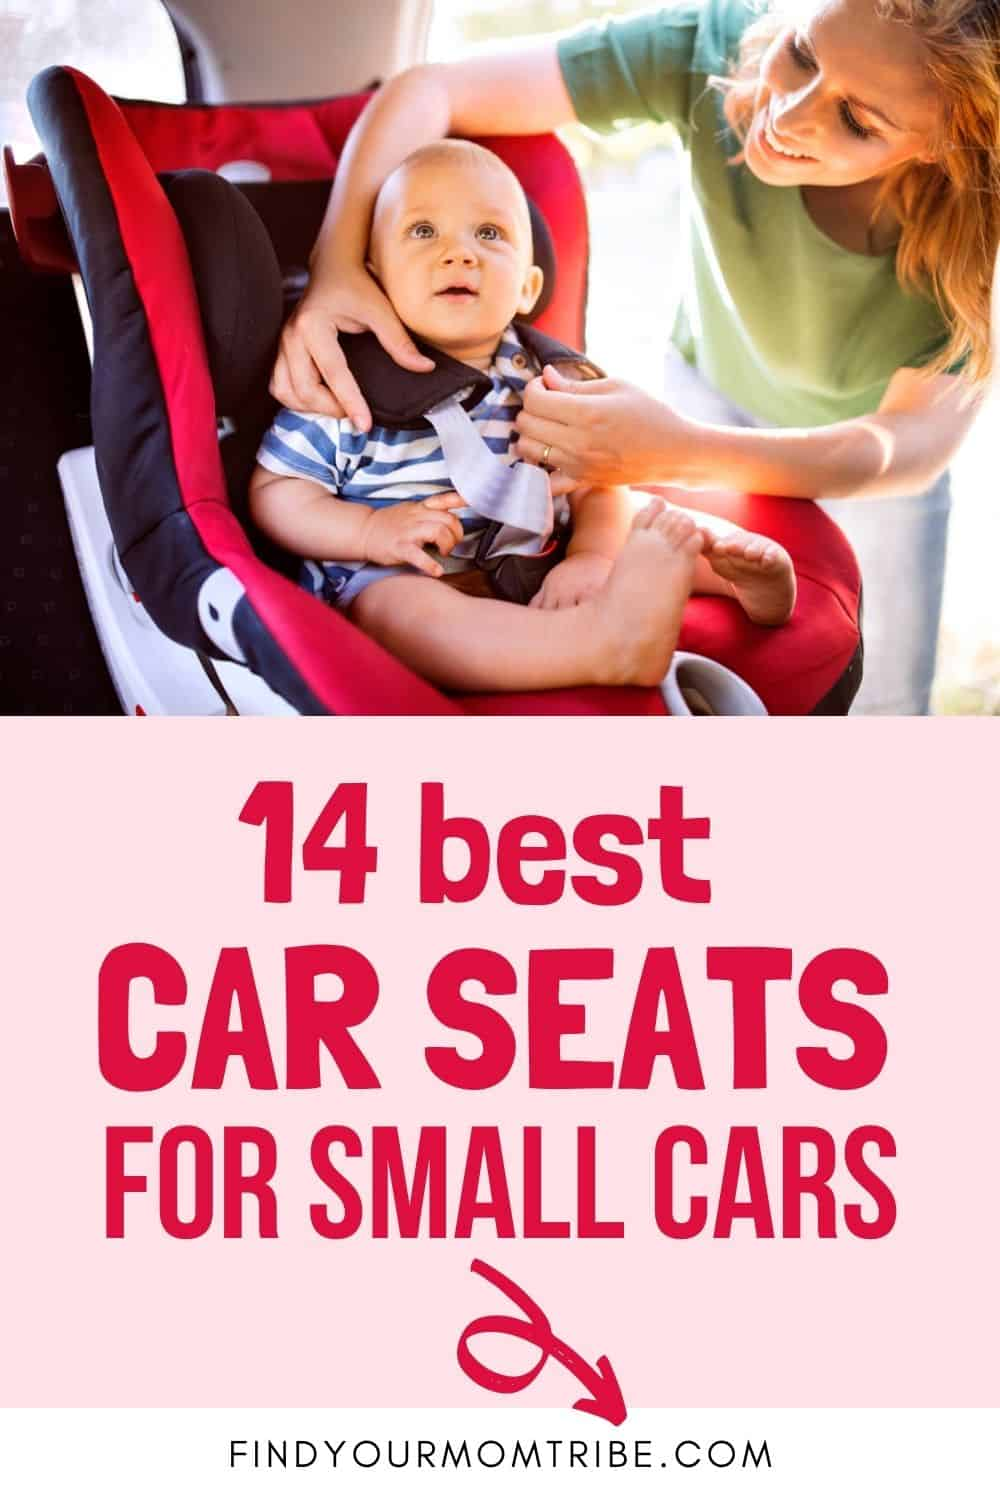 14 Best Car Seats For Small Cars Pinterest